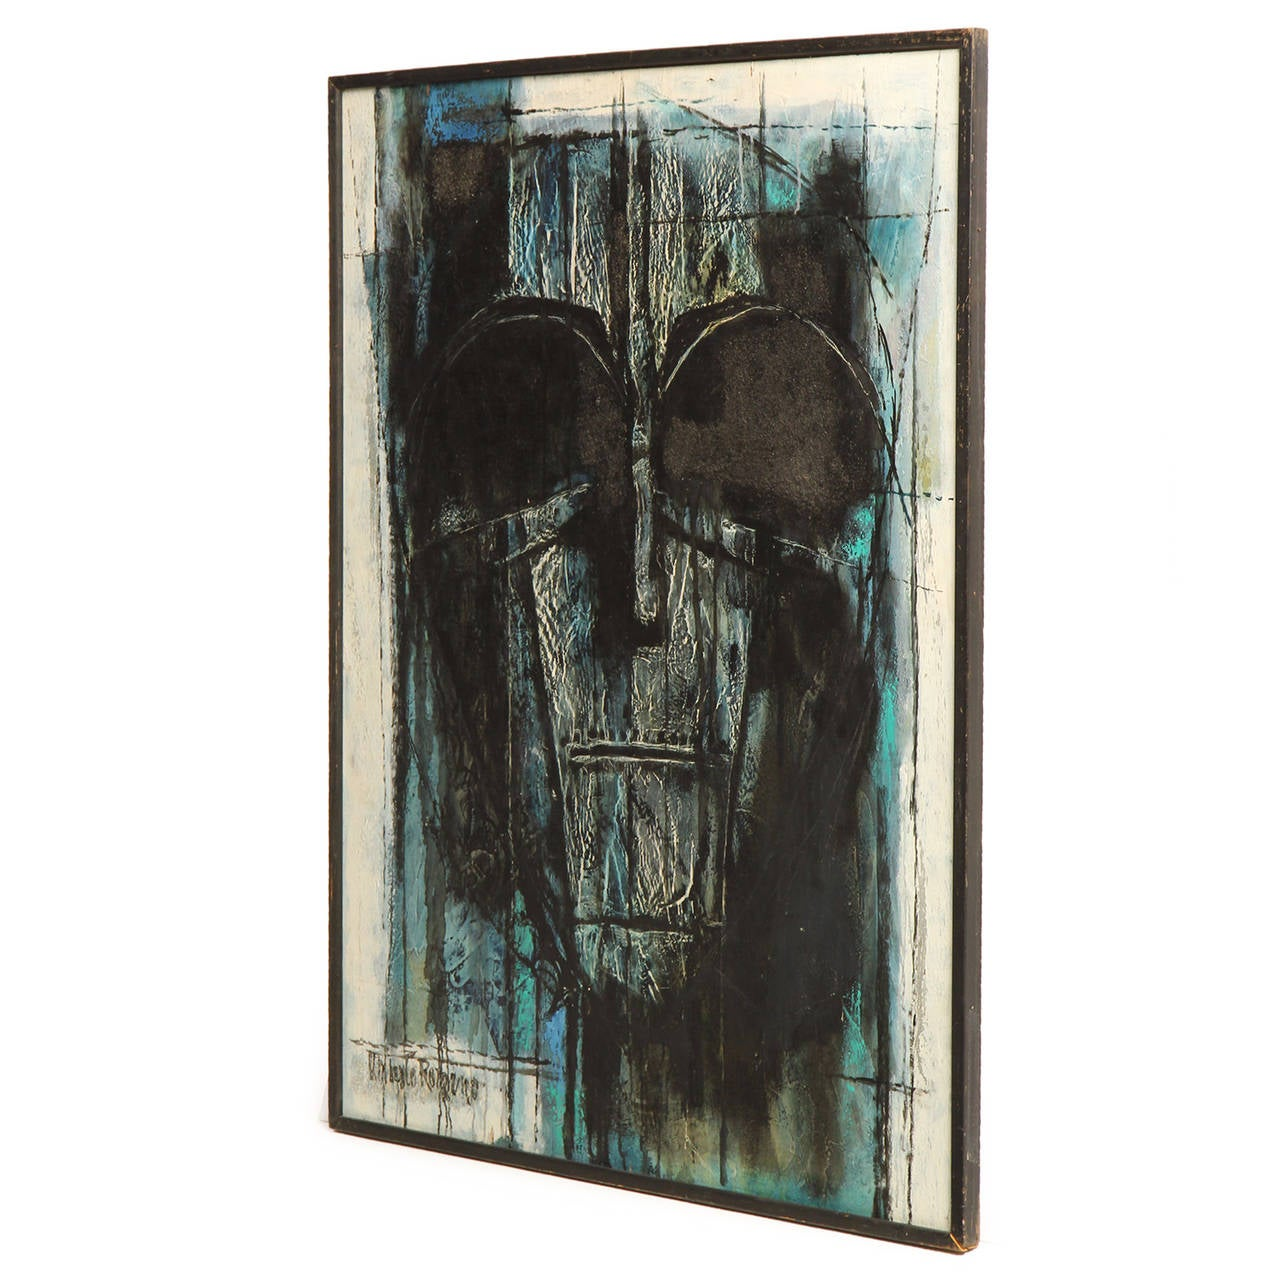 A painting depicting an abstracted mask in tones of black, blue, grey and cream. Titled